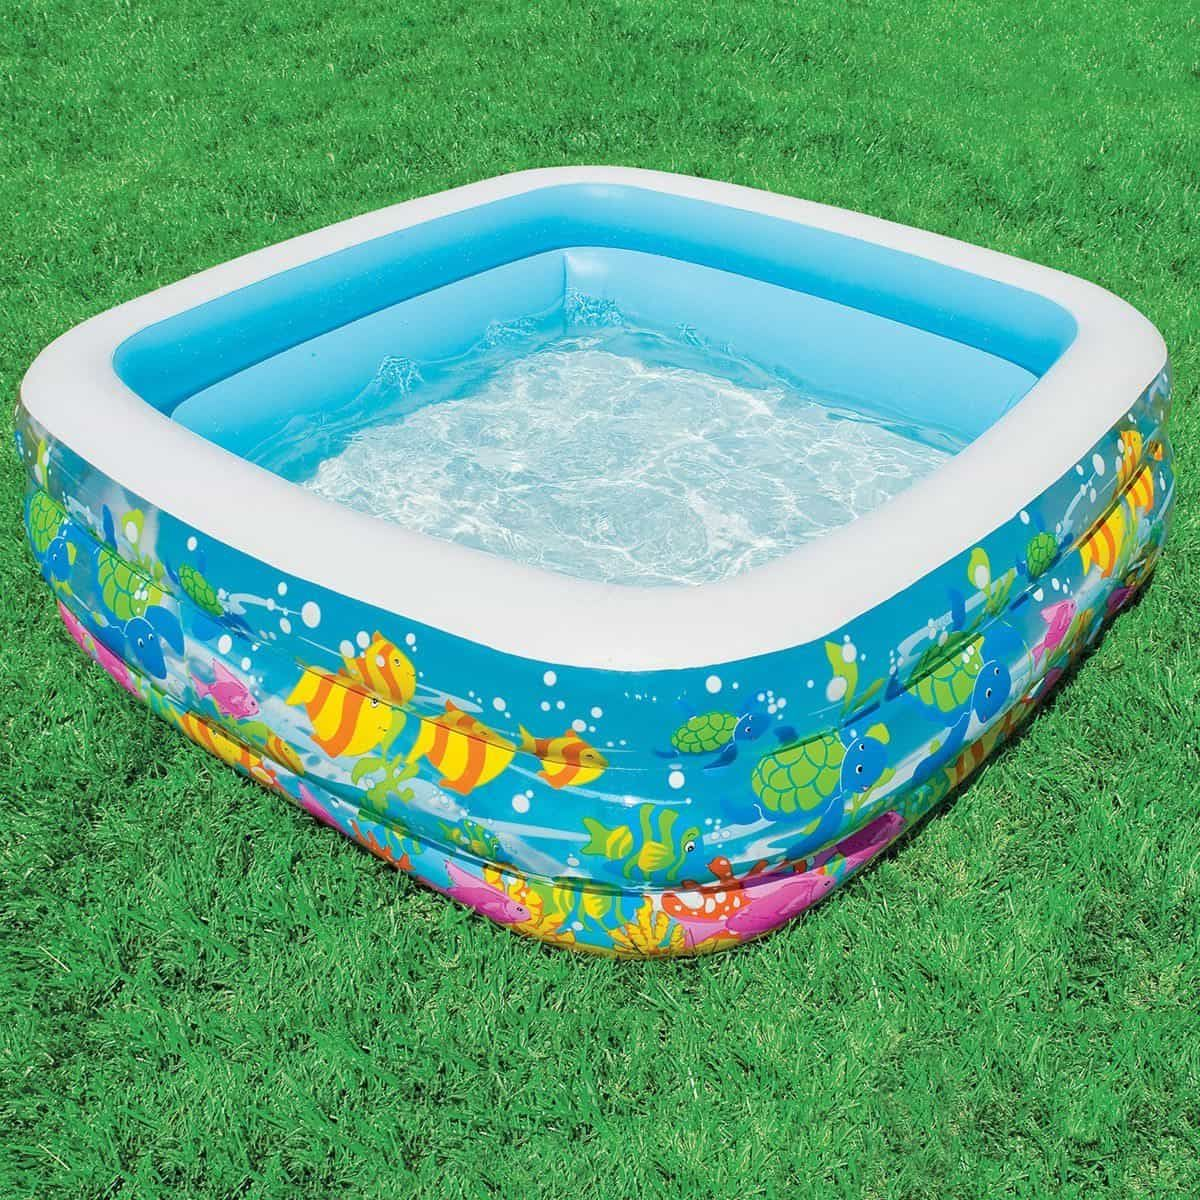 Easy Too Install Inflatable Swimming Pools Kiddie Pool Inflatable Pool Pool